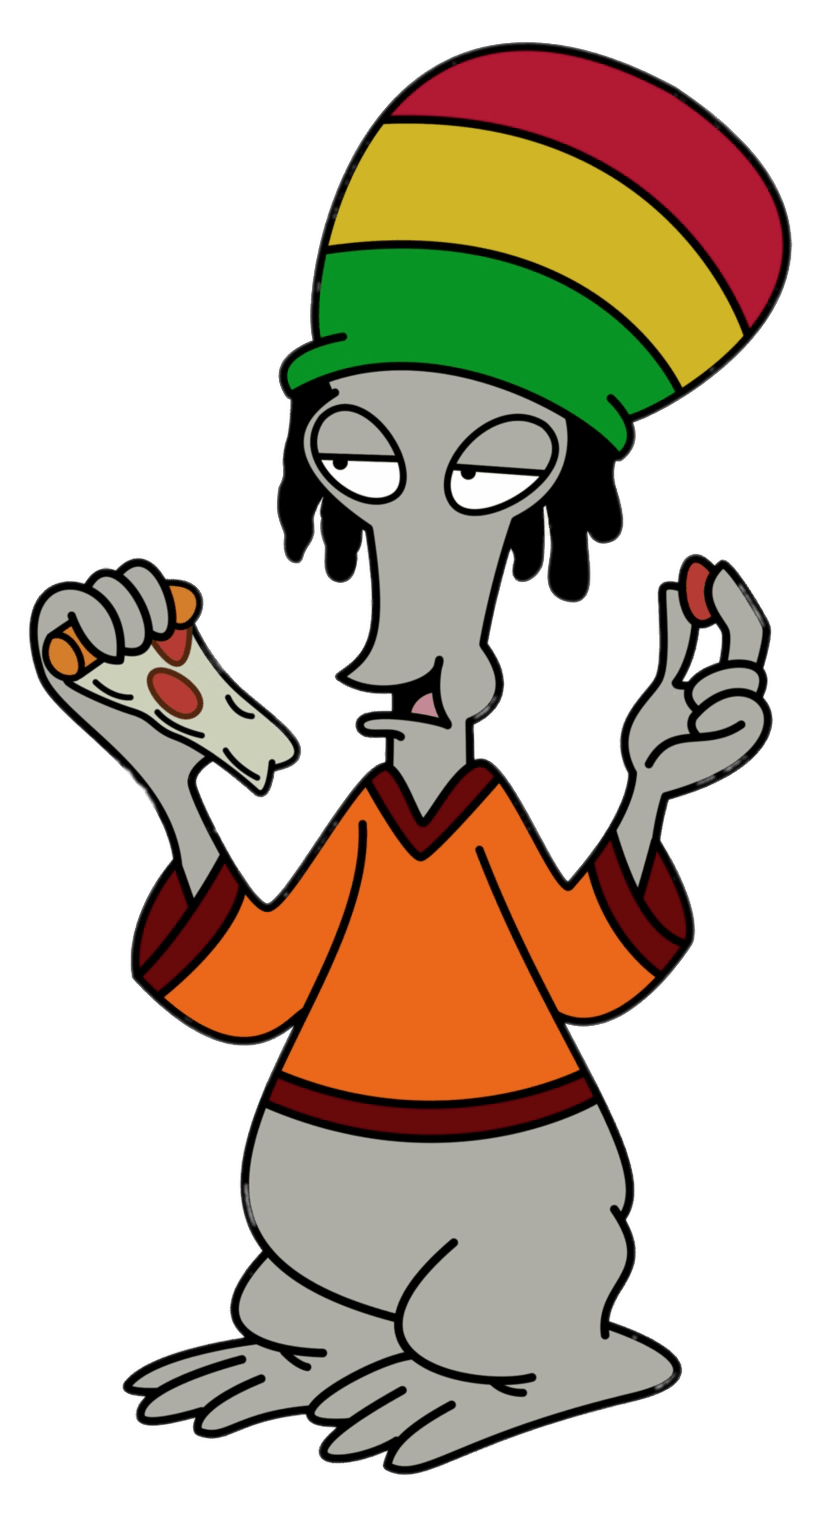 American Dad american dad! character roger the alien jamaican outfit